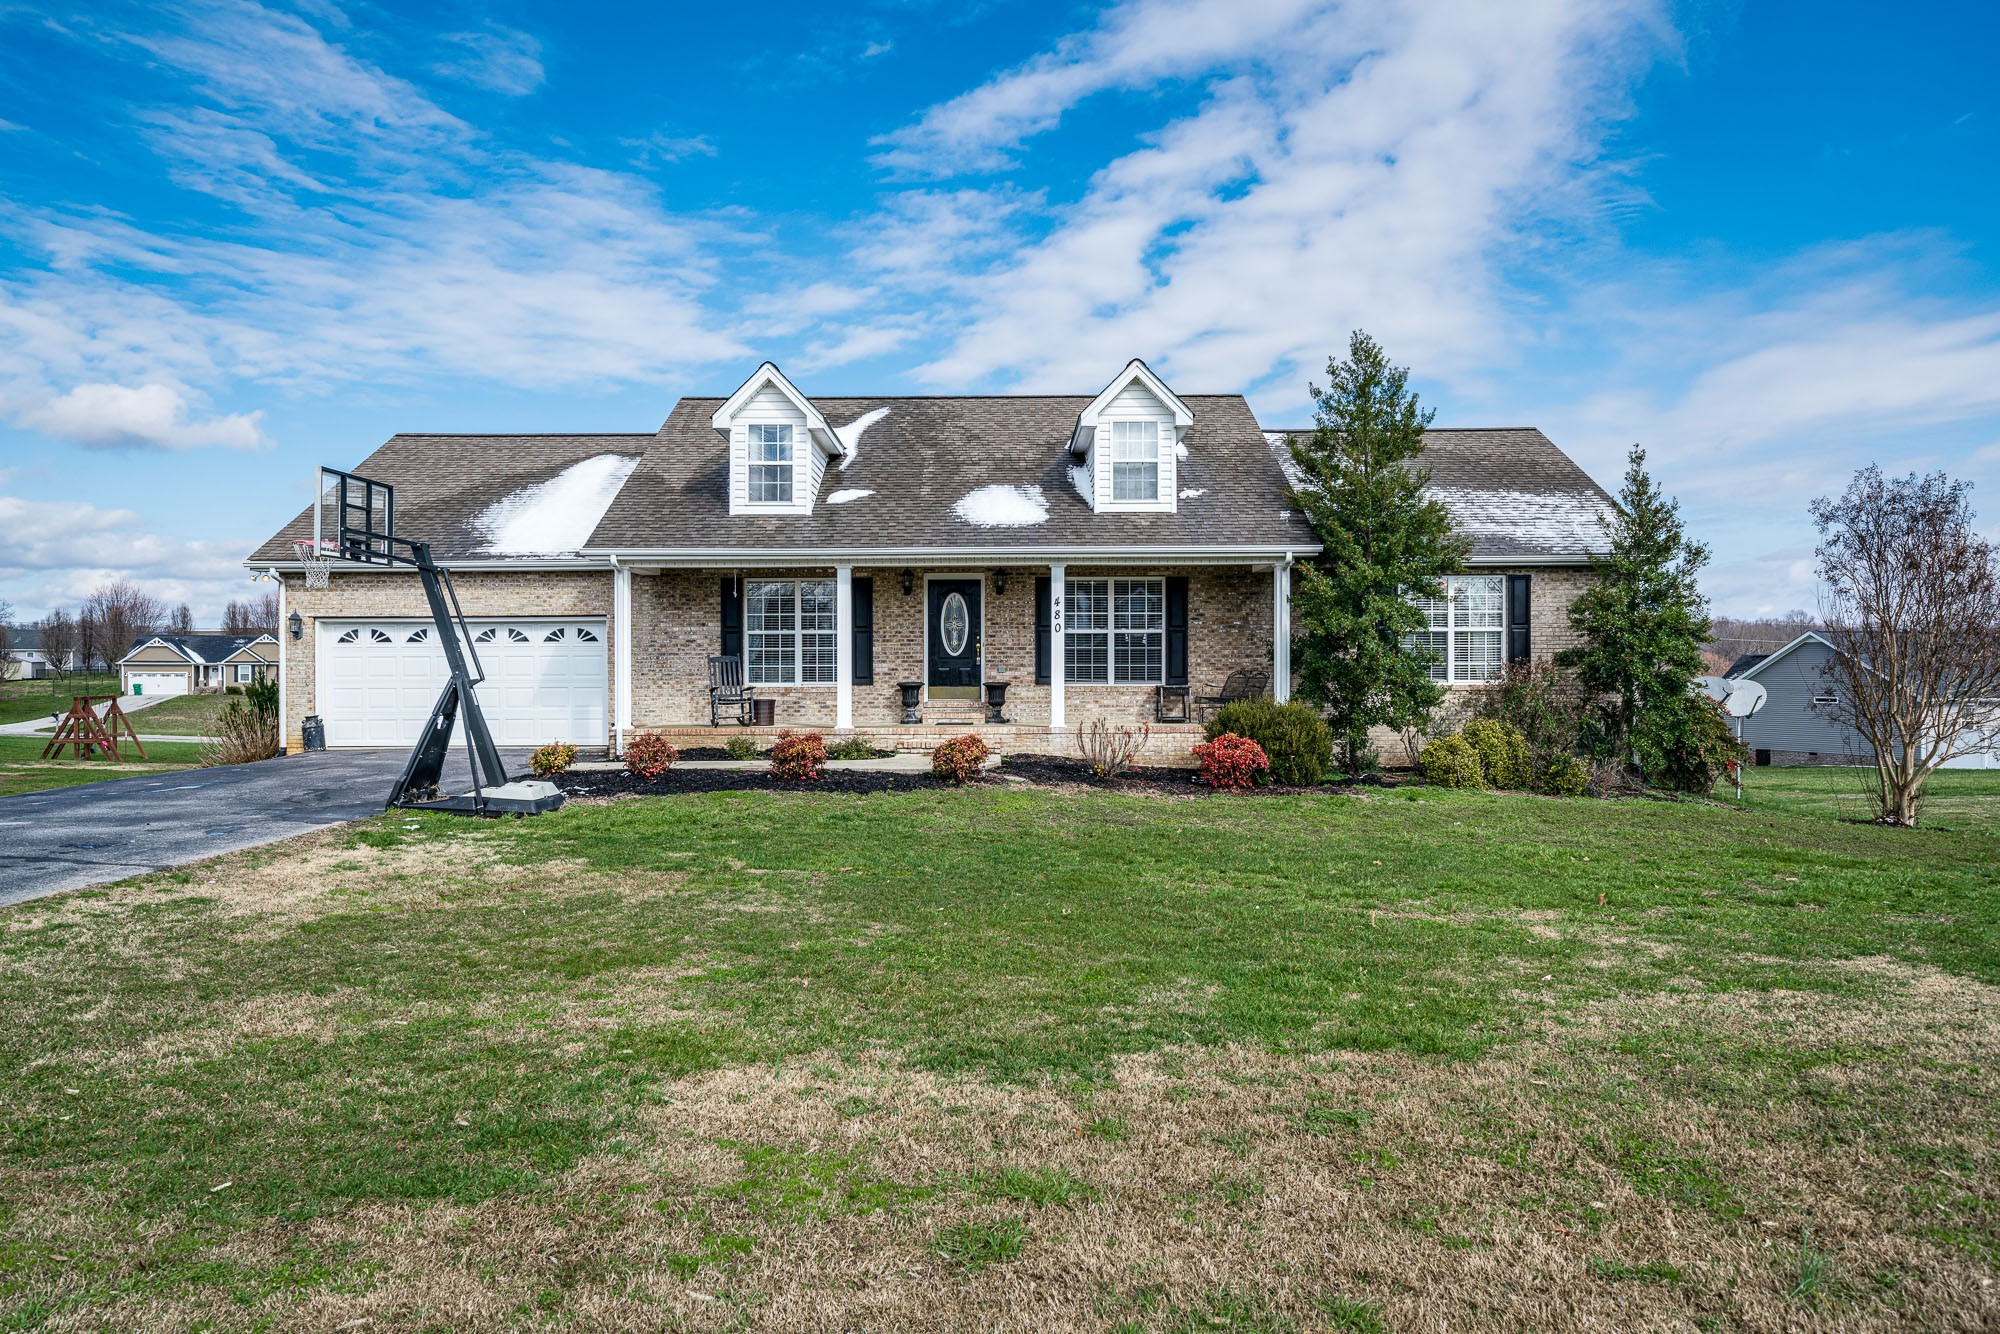 480 Golden Cir, Cookeville, TN 38506 - Cookeville, TN real estate listing